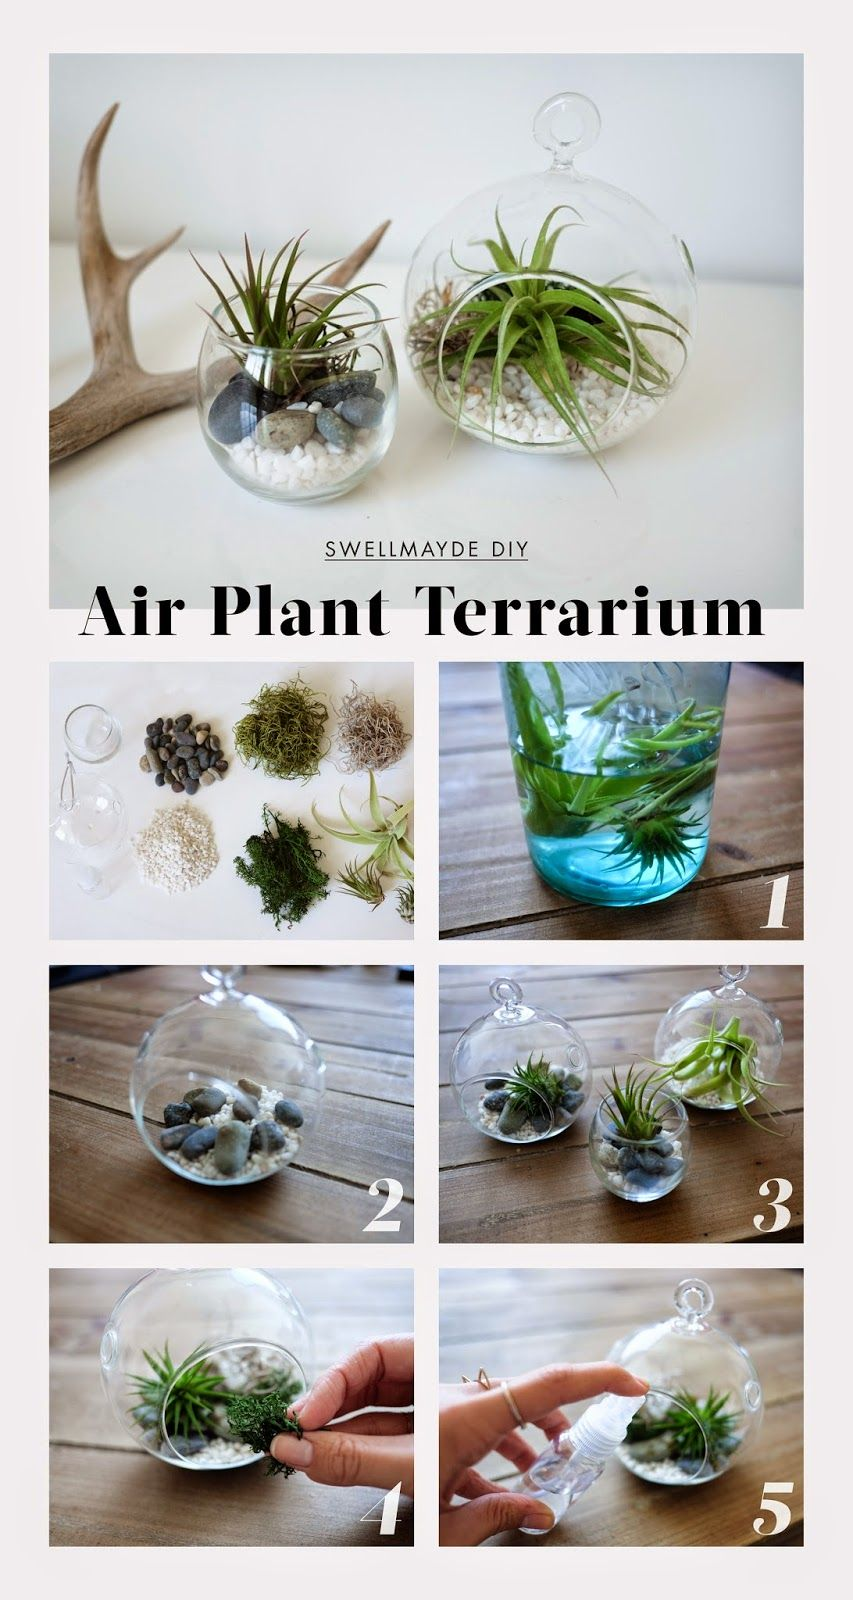 AIR PLANT TERRARIUM Air plant terrarium, Air plants, Plants